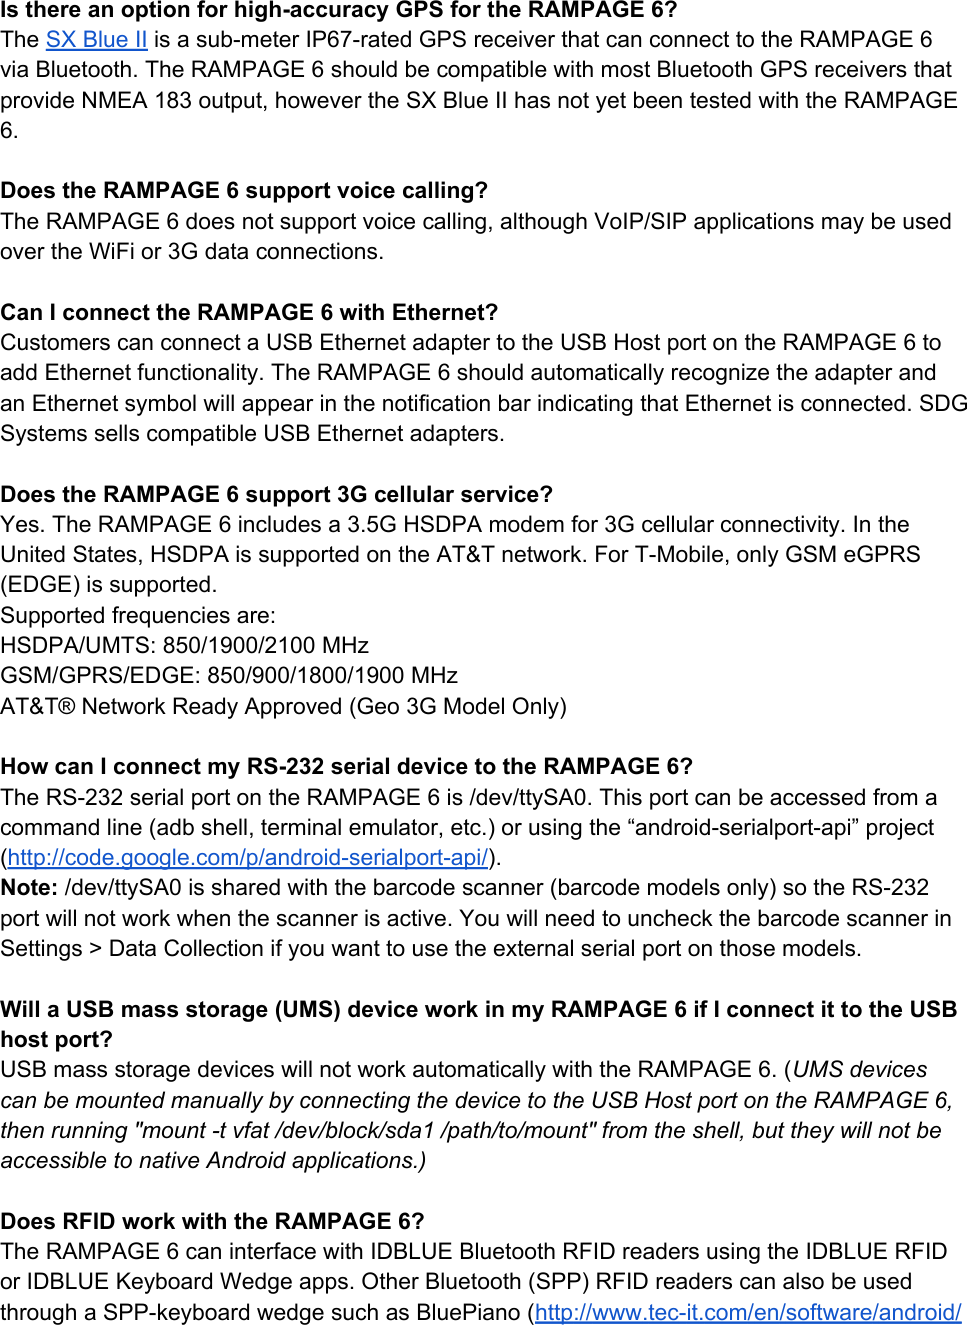 Rampage6Android FAQs